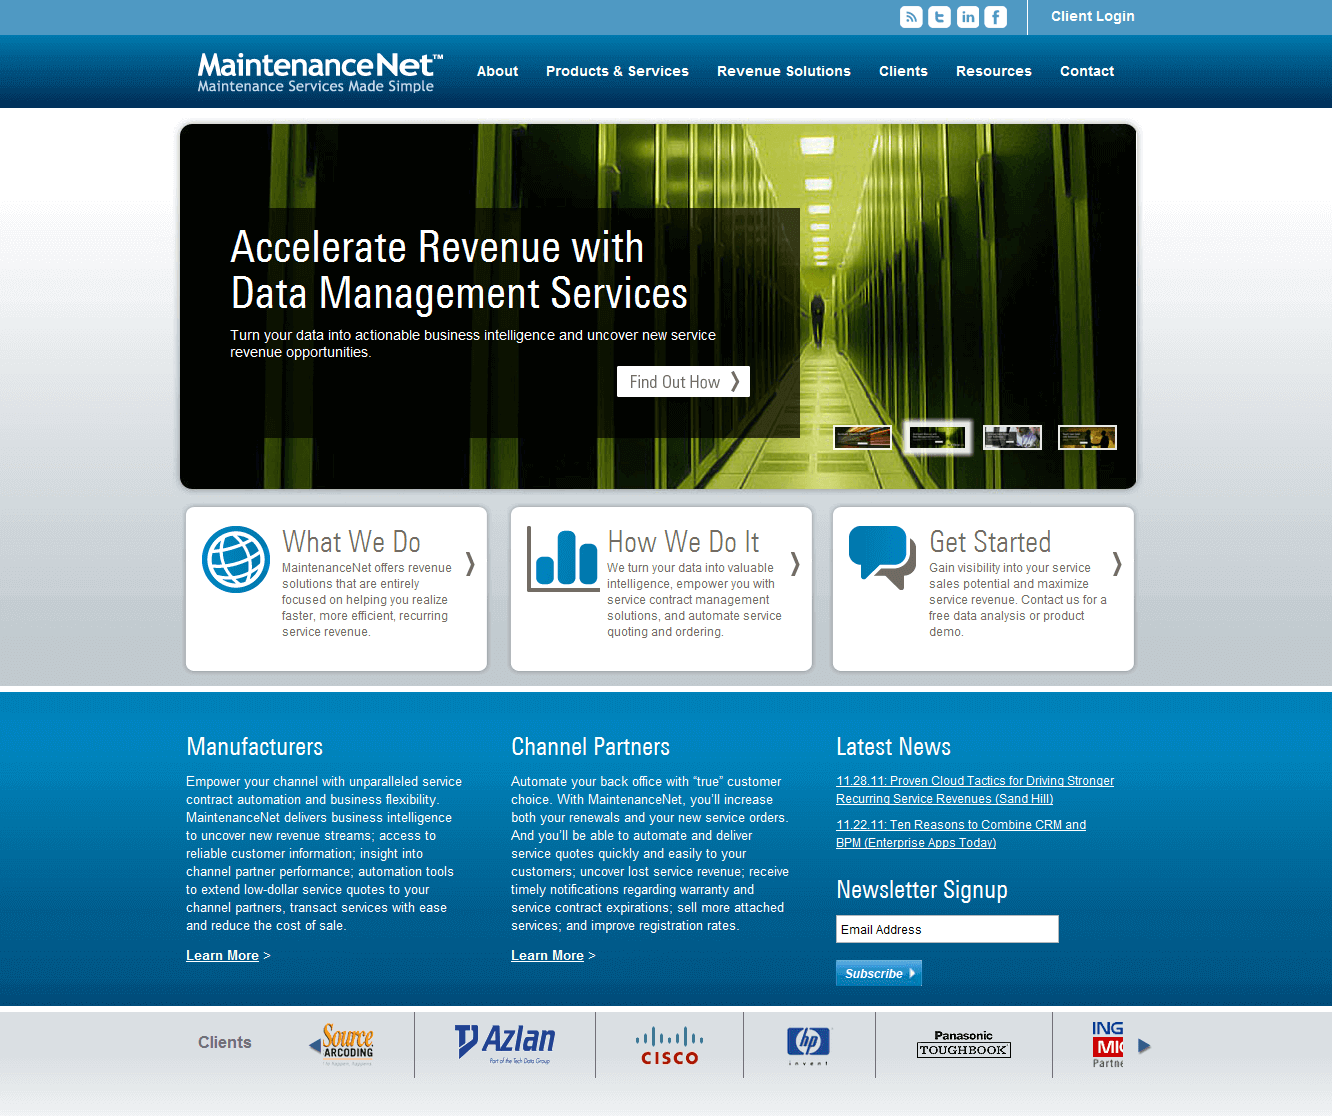 MaintenanceNet Web Design Image